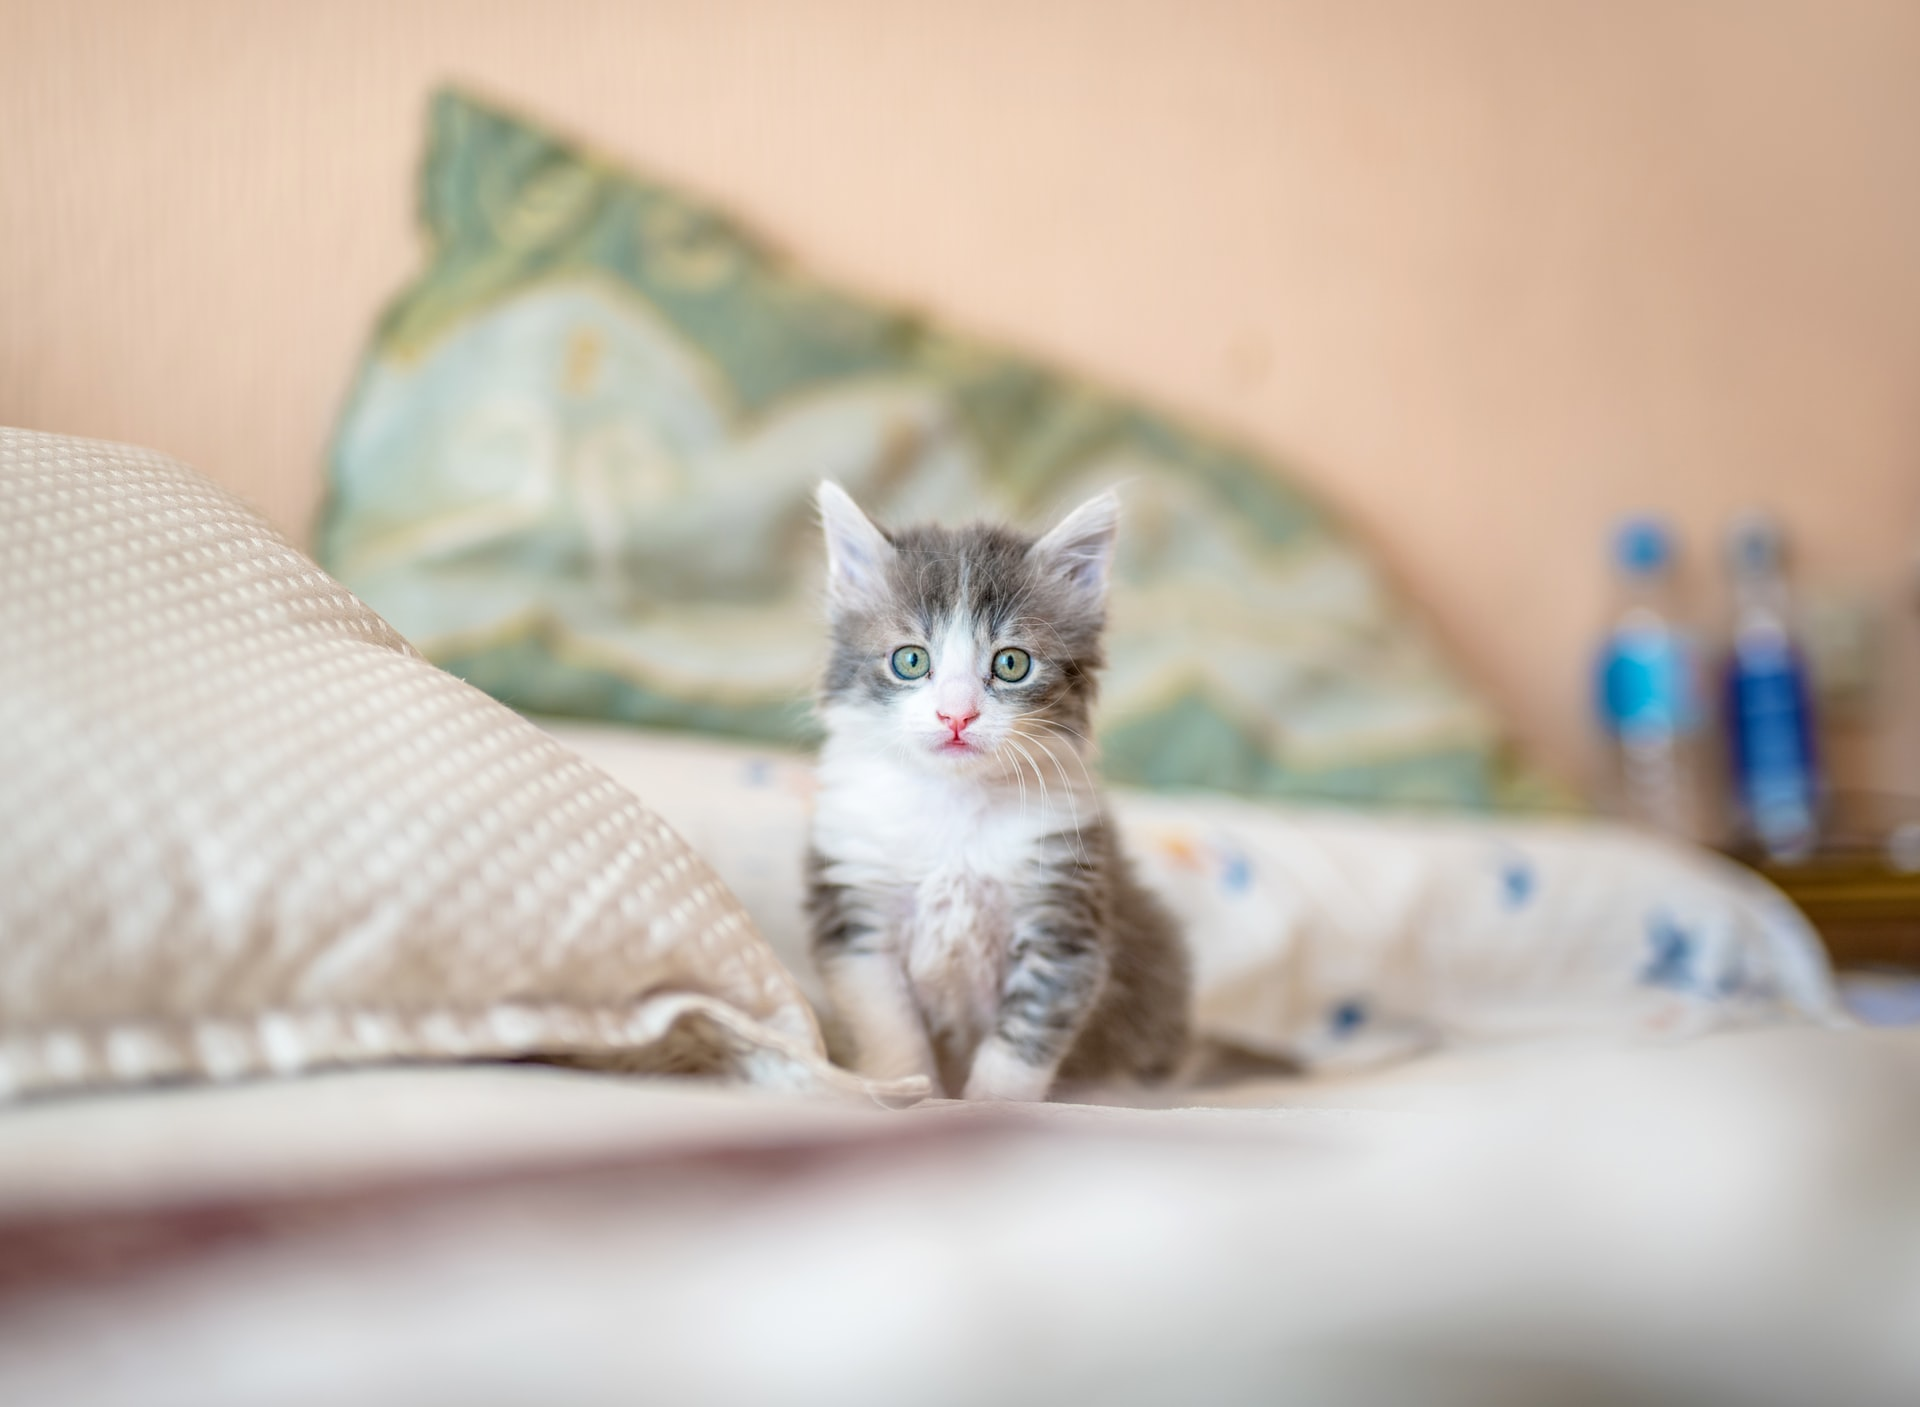 Kitten sitting on bed